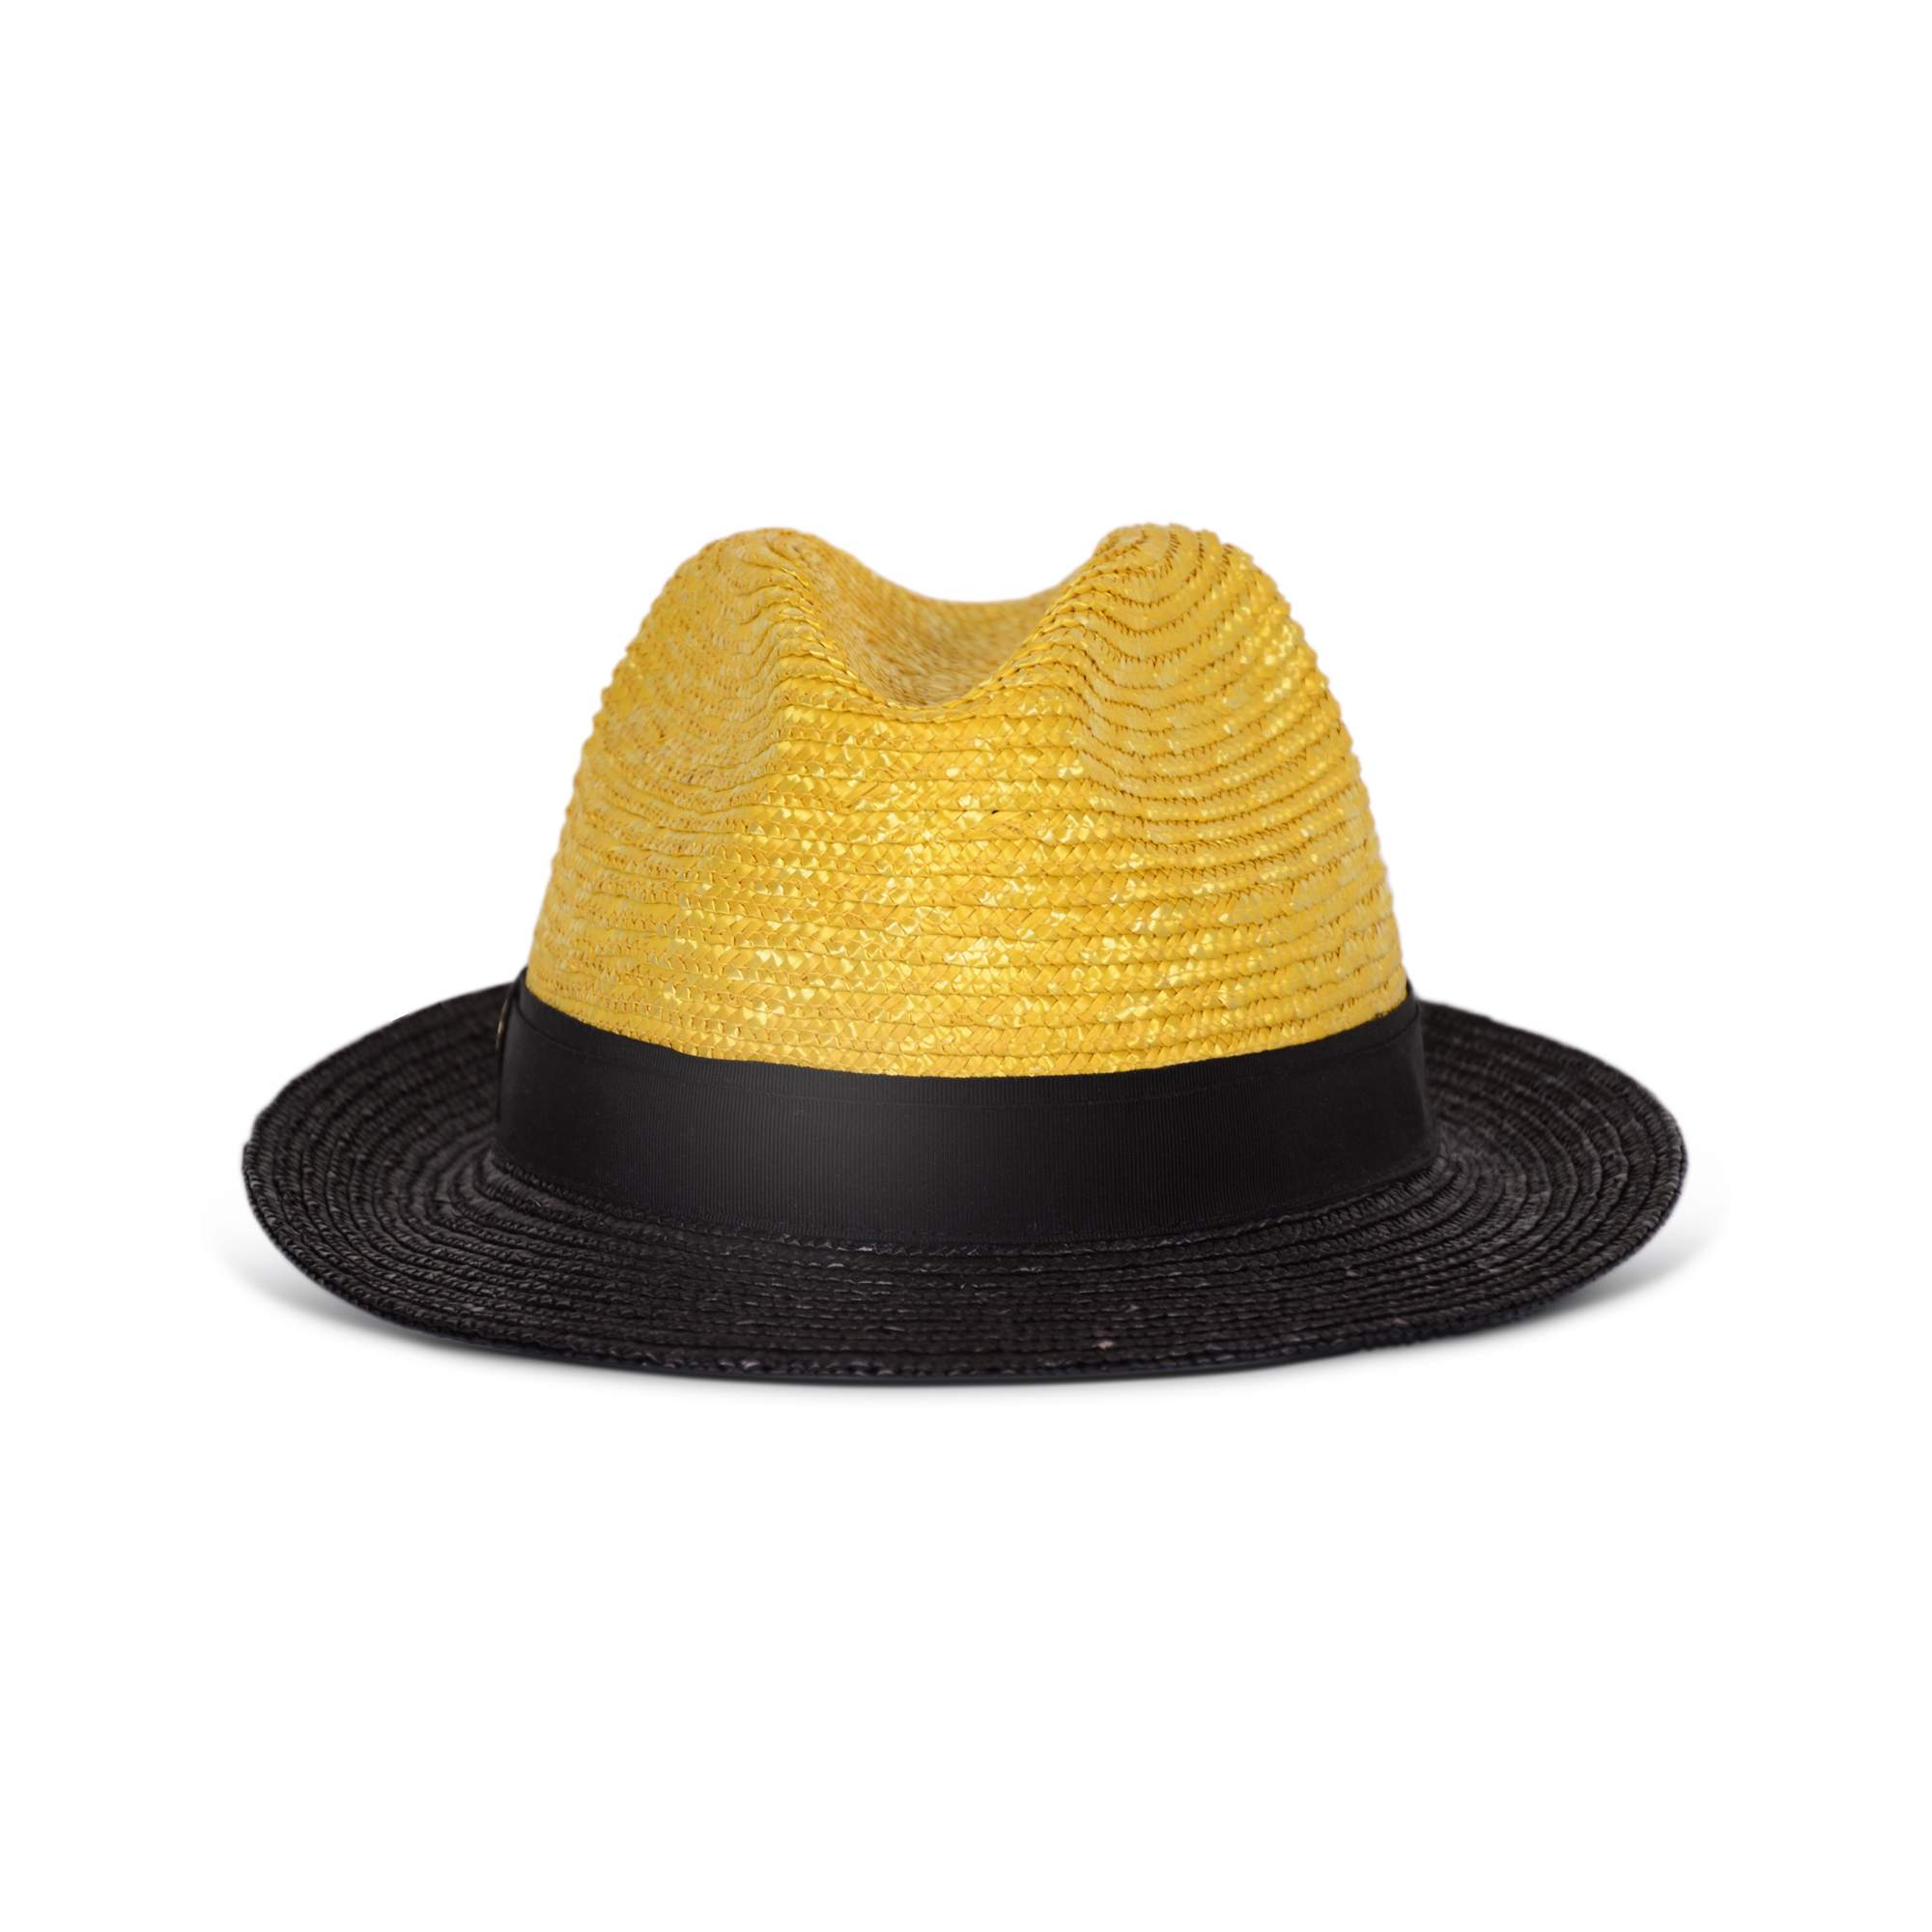 Emilio Pucci Hand woven straw Hat  747fb7ae8b9d